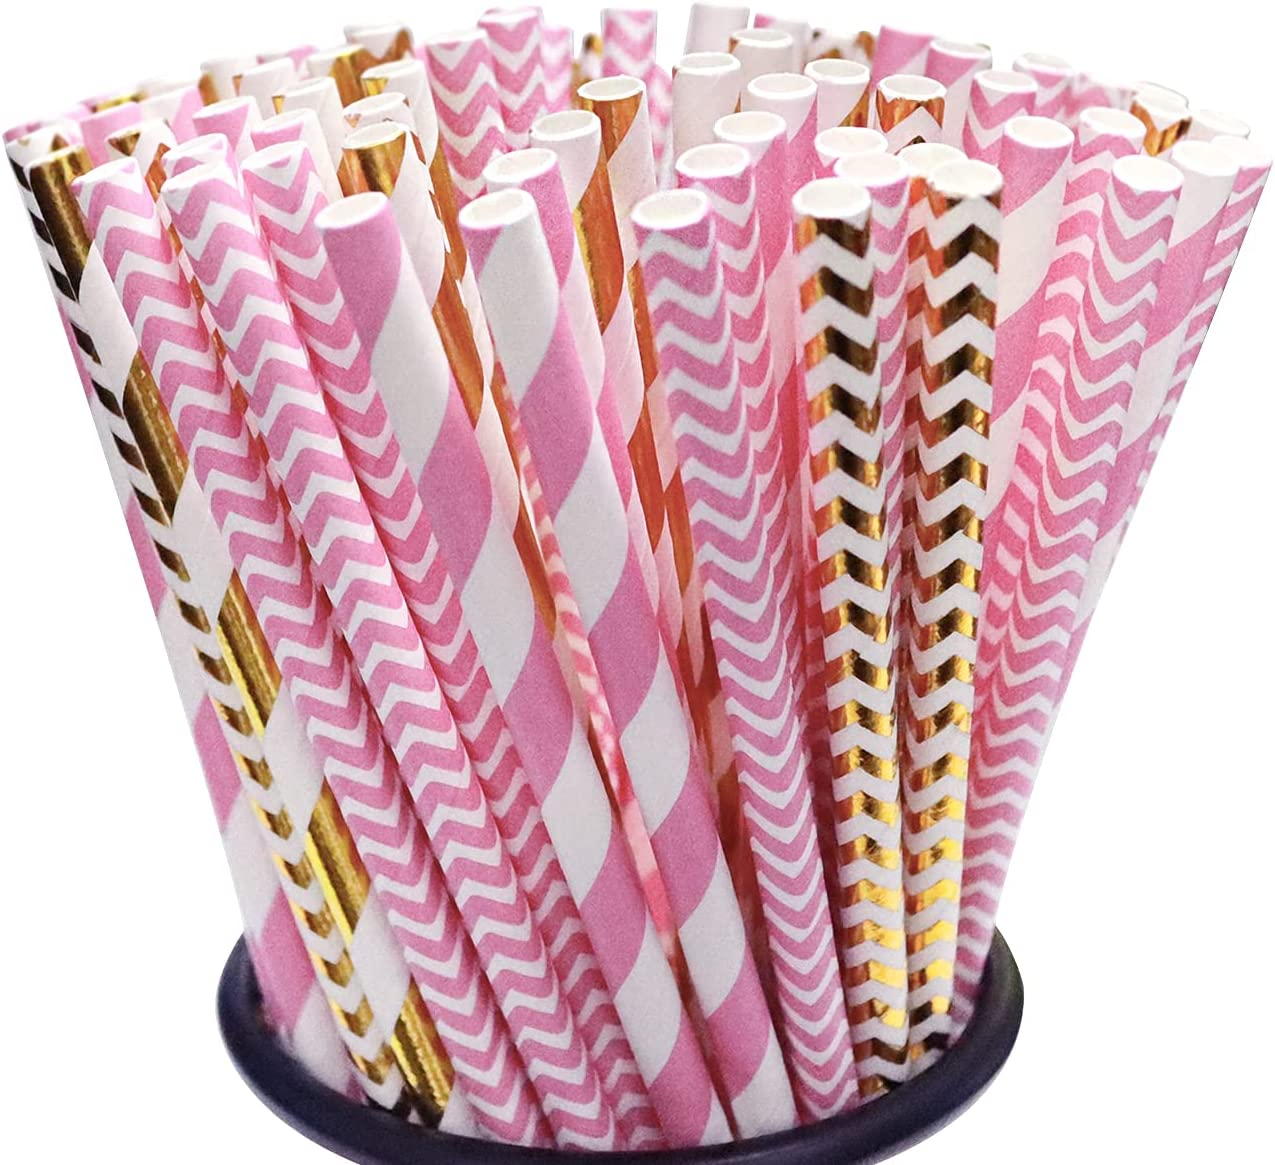 200 Pack Disposable Drinking Long Beach Raleigh Mall Mall Straws Paper Biodegradable